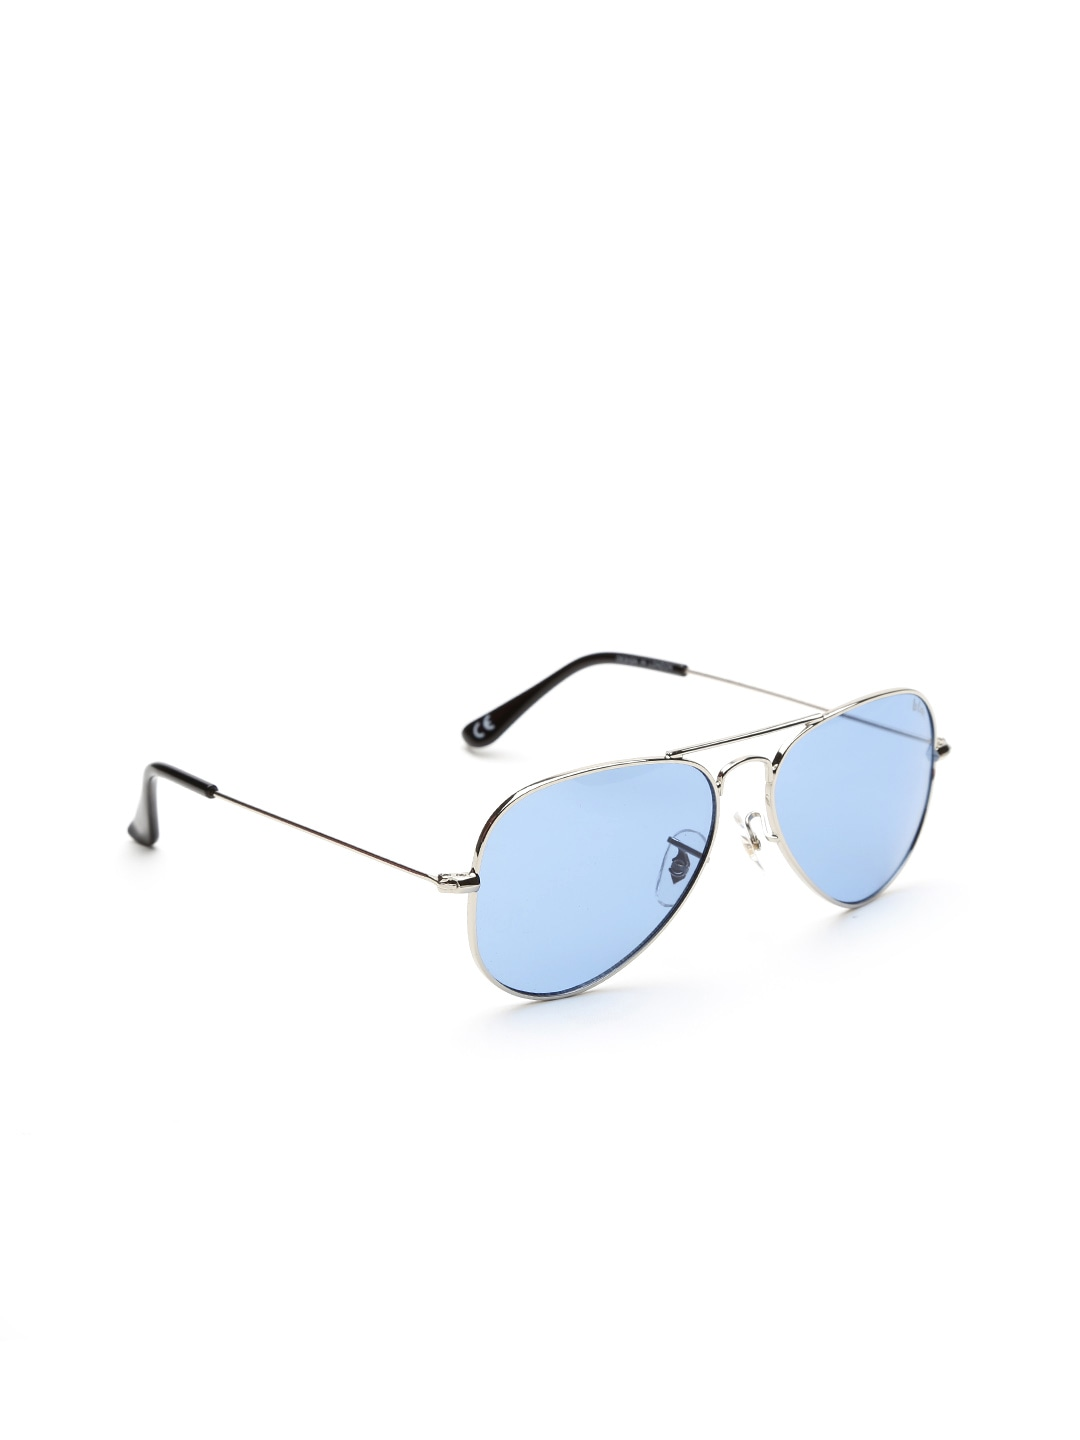 Buy Lee Cooper LC9078 SIL Unisex Aviator Sunglasses Online at Best Price in India